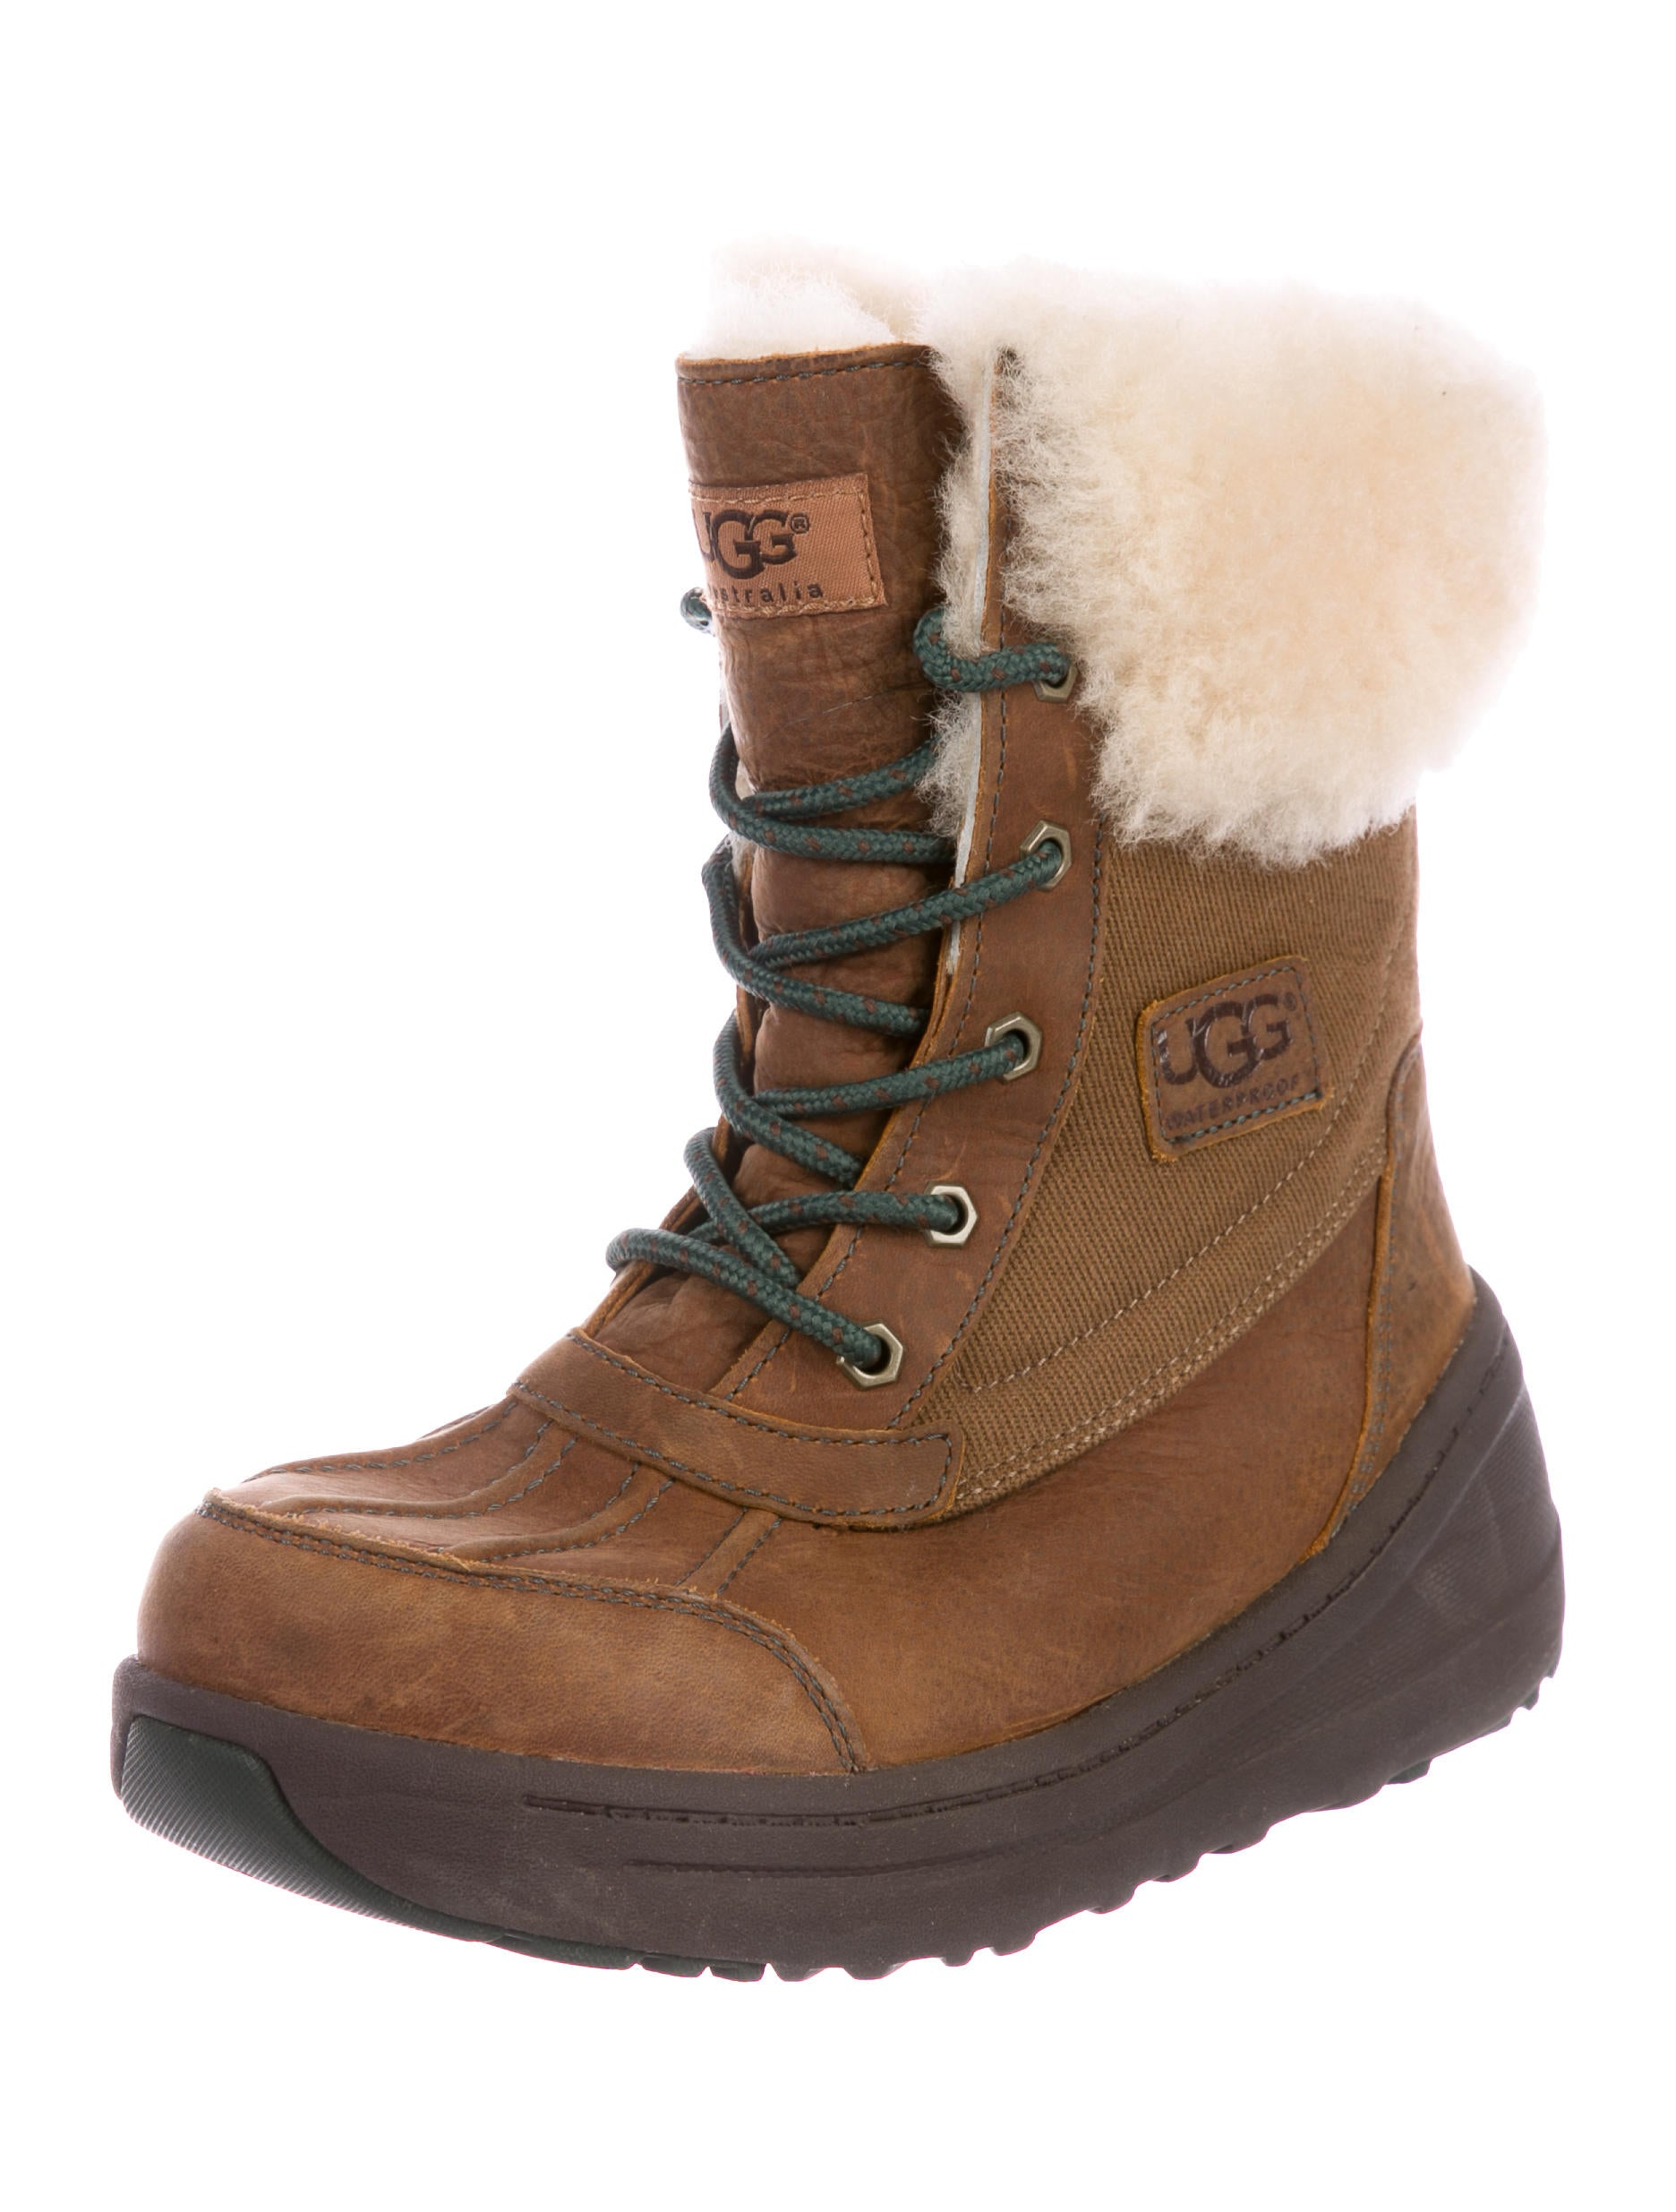 amazing price for sale UGG Australia Leather Shearling-Trimmed Snow Boots with paypal online wiki sale online outlet browse clearance low cost GVqKl5Dz